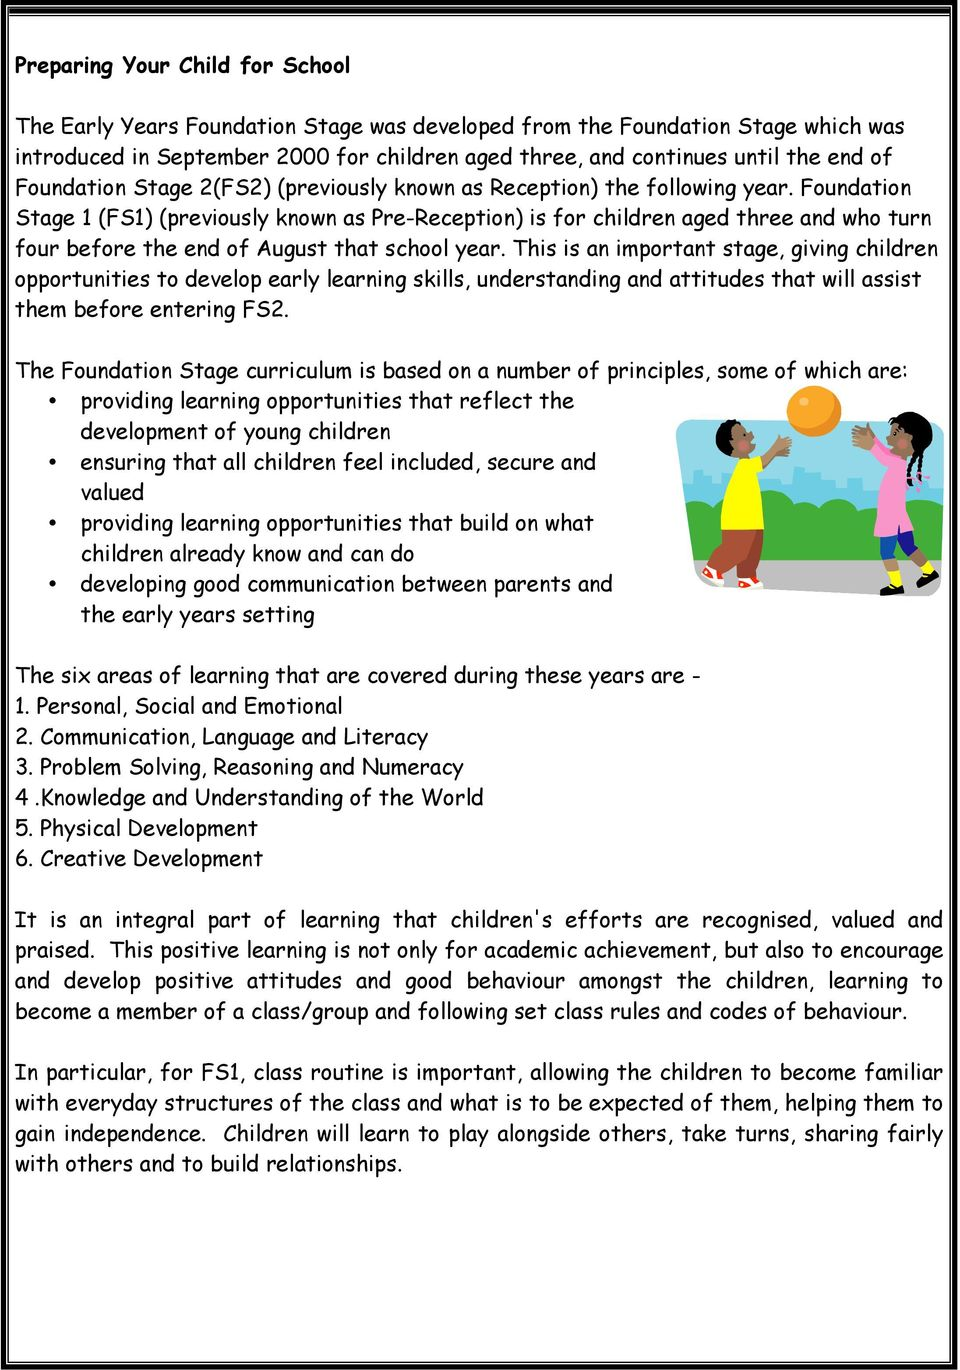 Foundation Stage 1 (FS1) (previously known as Pre-Reception) is for children aged three and who turn four before the end of August that school year.